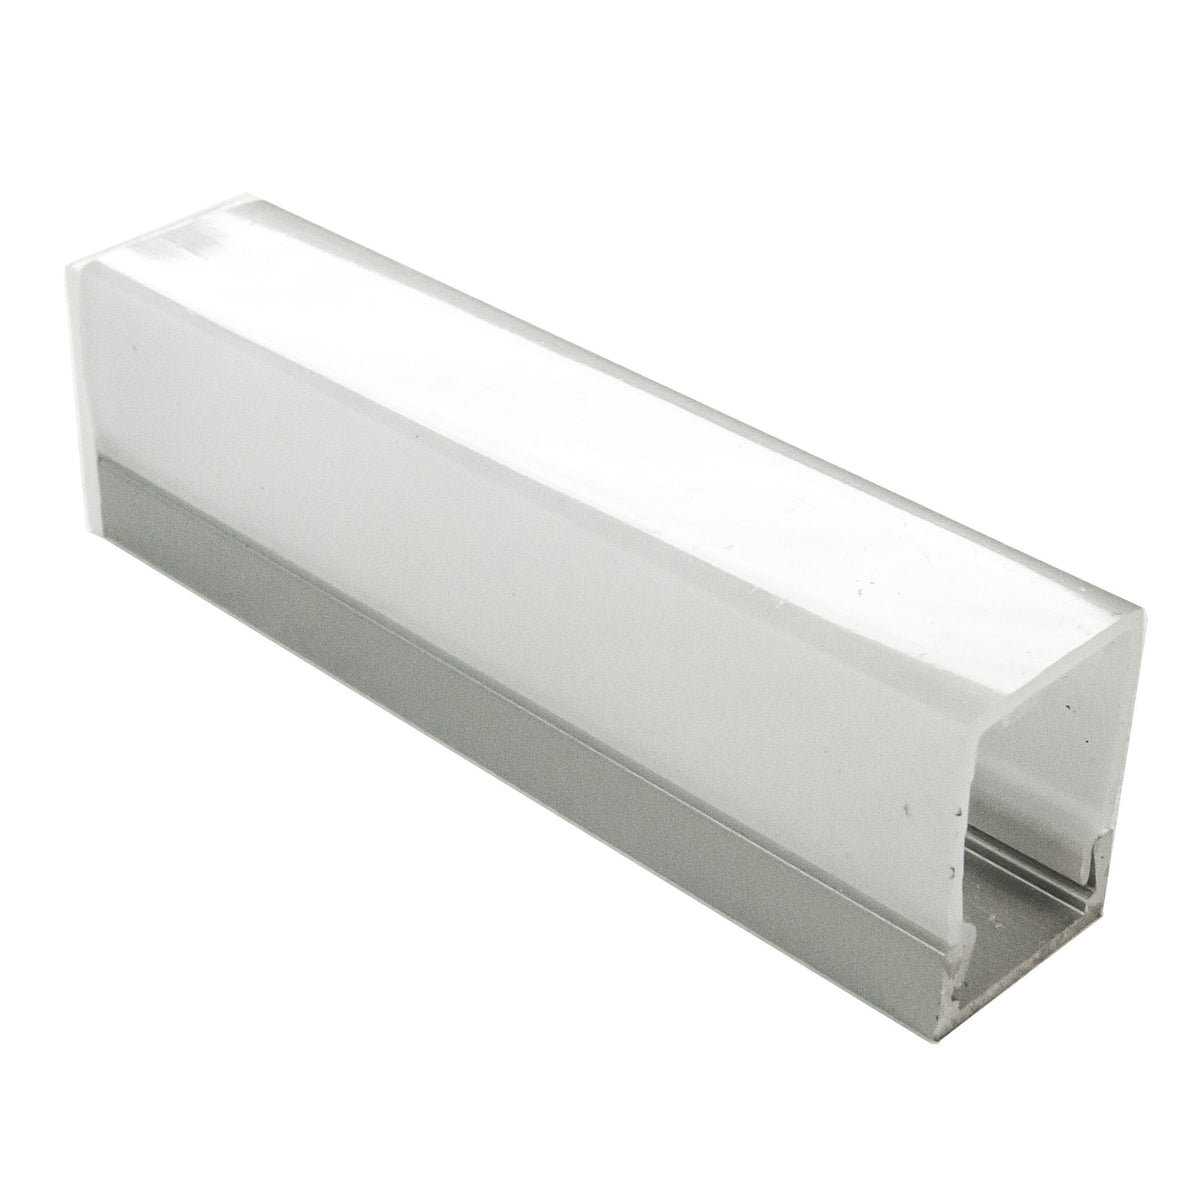 Aluminum Channel - MOSS-ALM-1520 - Moss LED